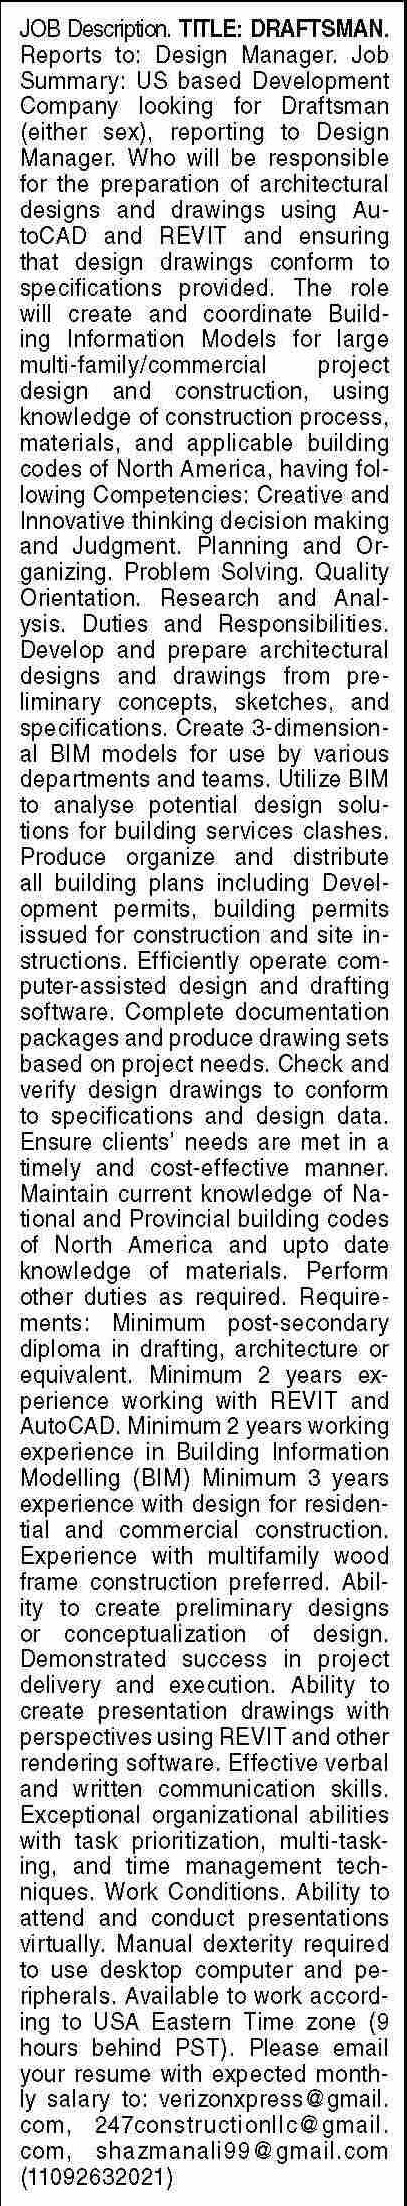 Dawn Sunday Classified Ads 19 Sep 2021 for Engineering Staff